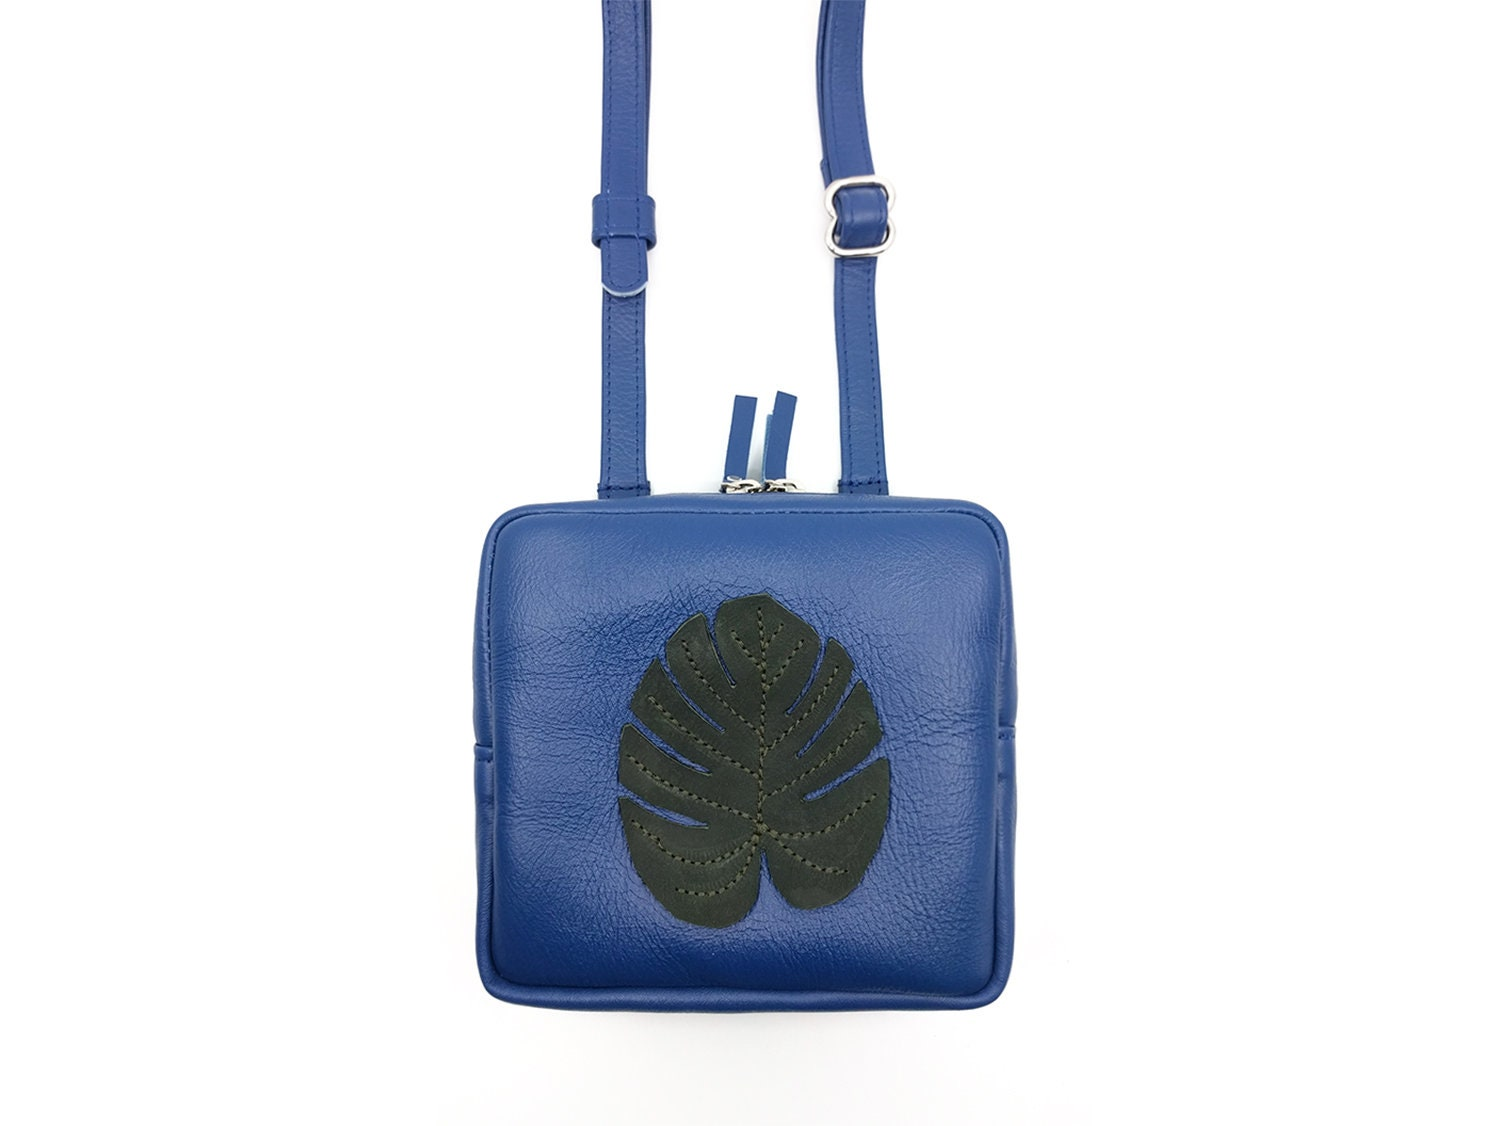 Michael kors brooklyn large leather applique camera bag in